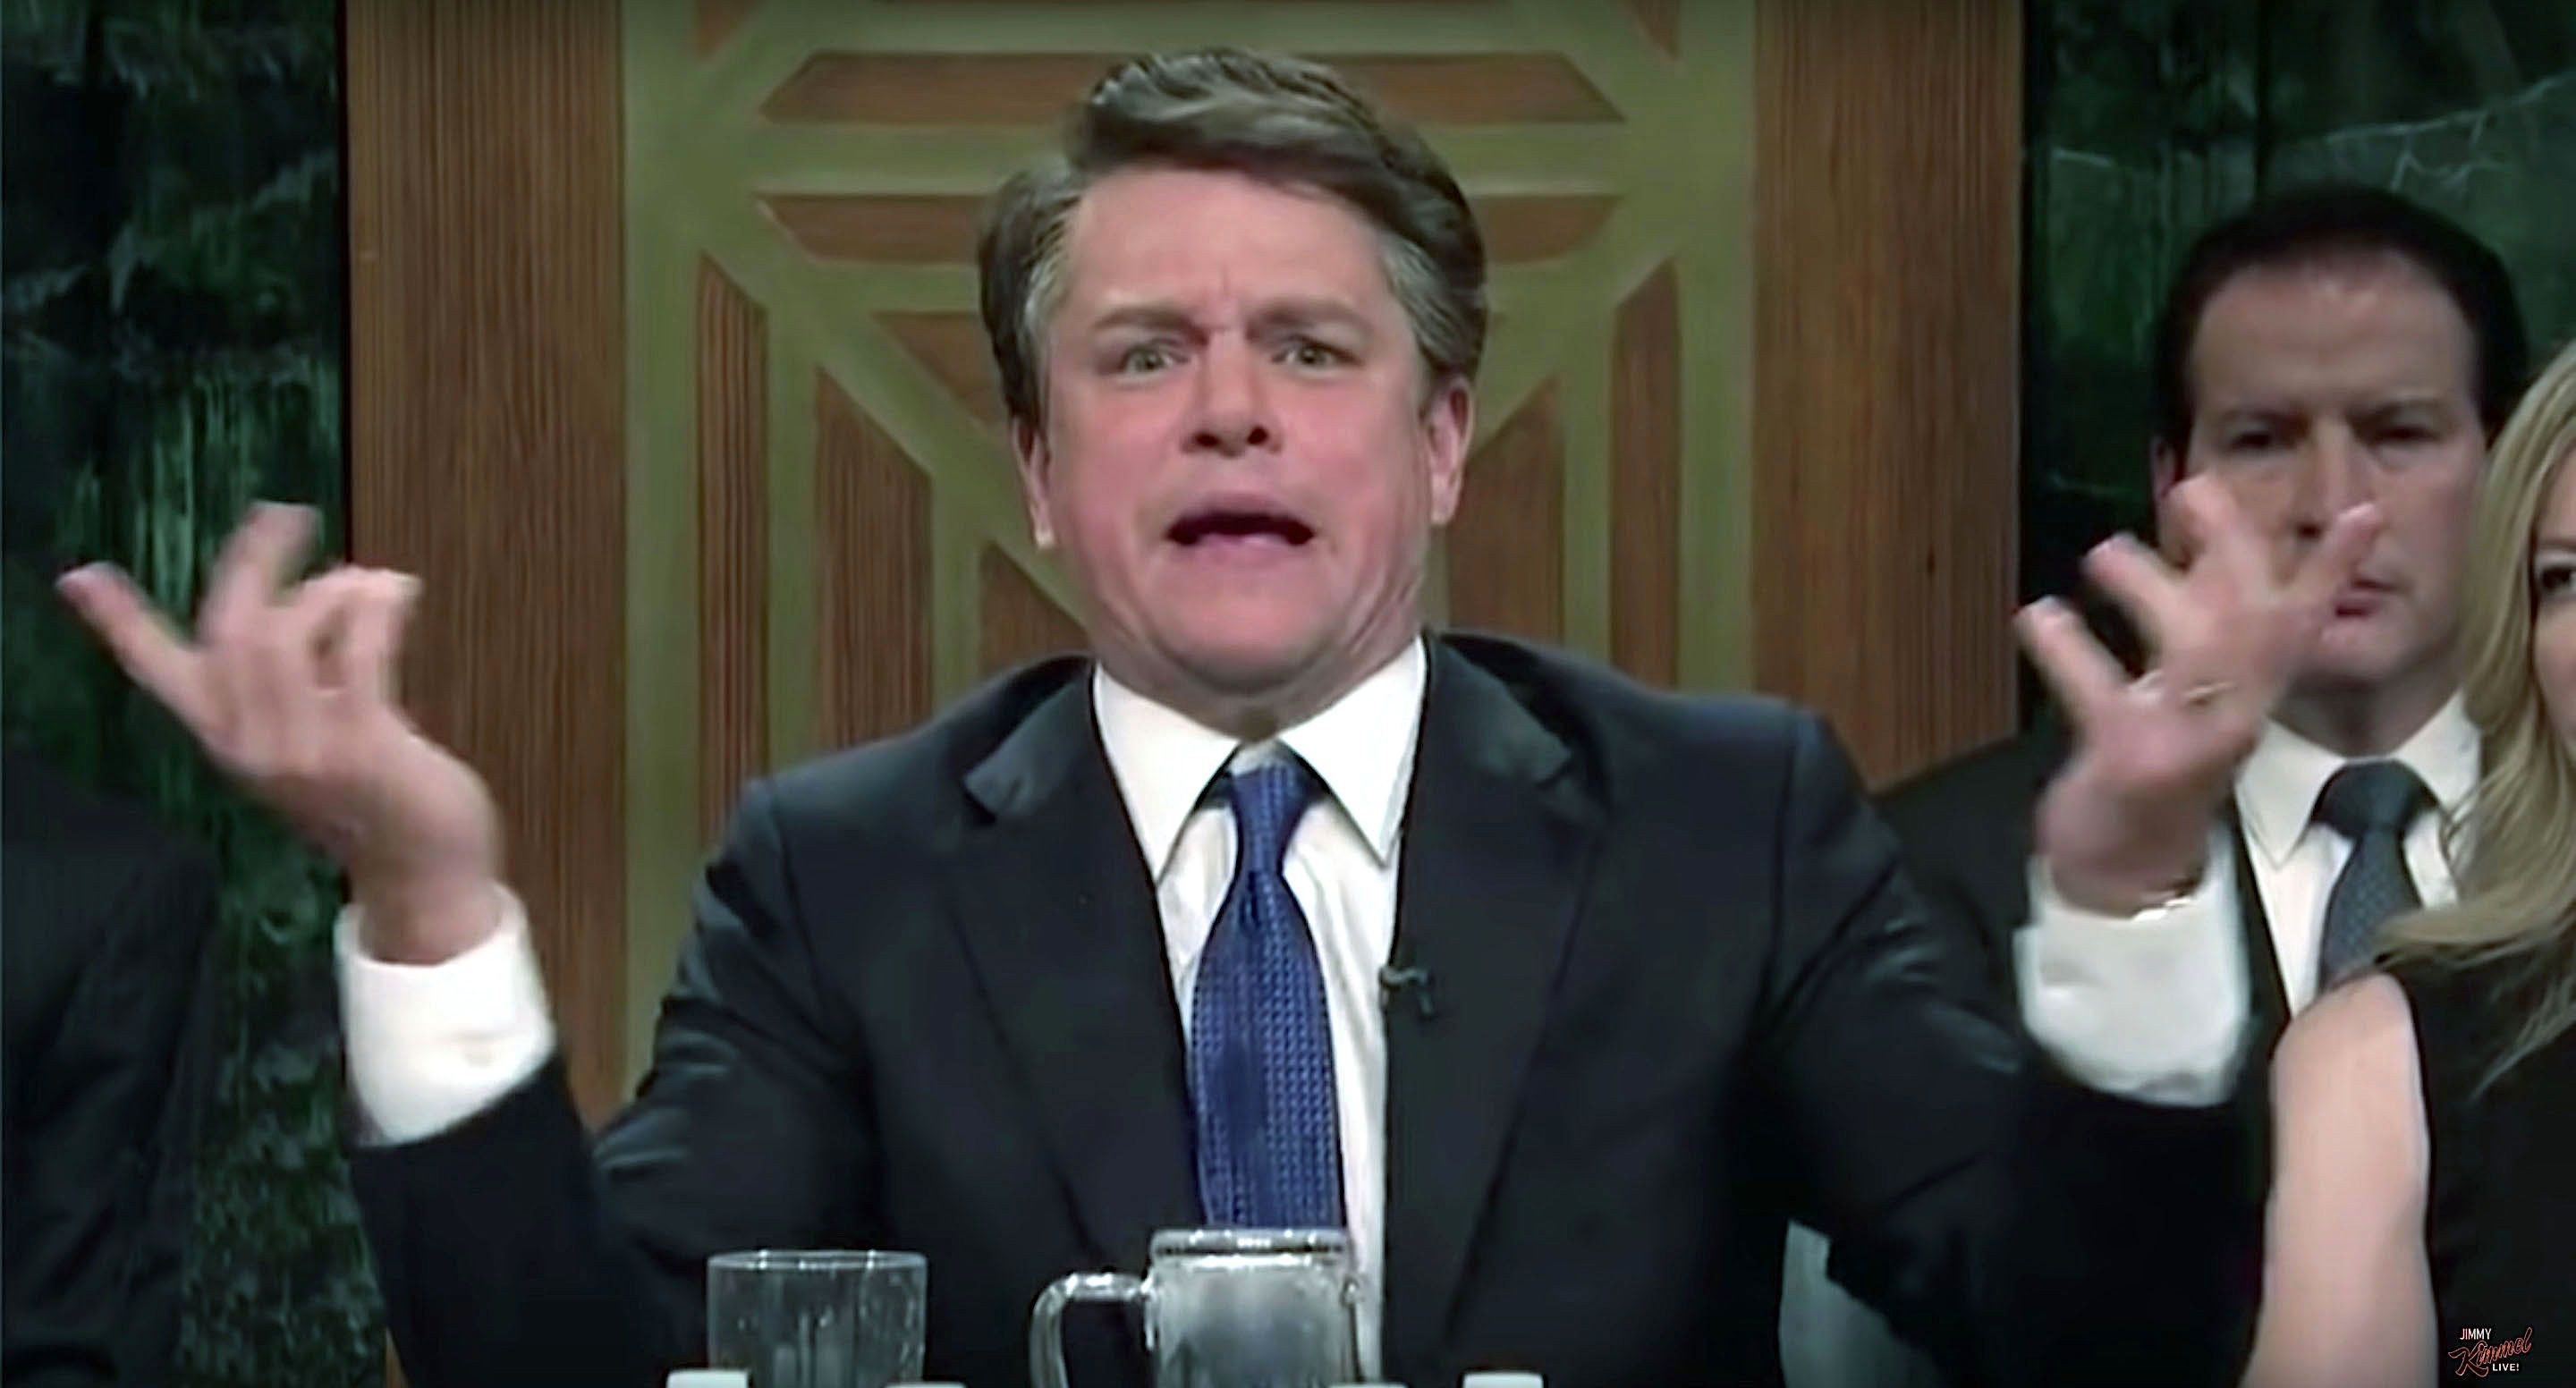 Matt Damons appearance on Saturday Night Live as Brett Kavanaugh did not impress Jimmy Kimmel